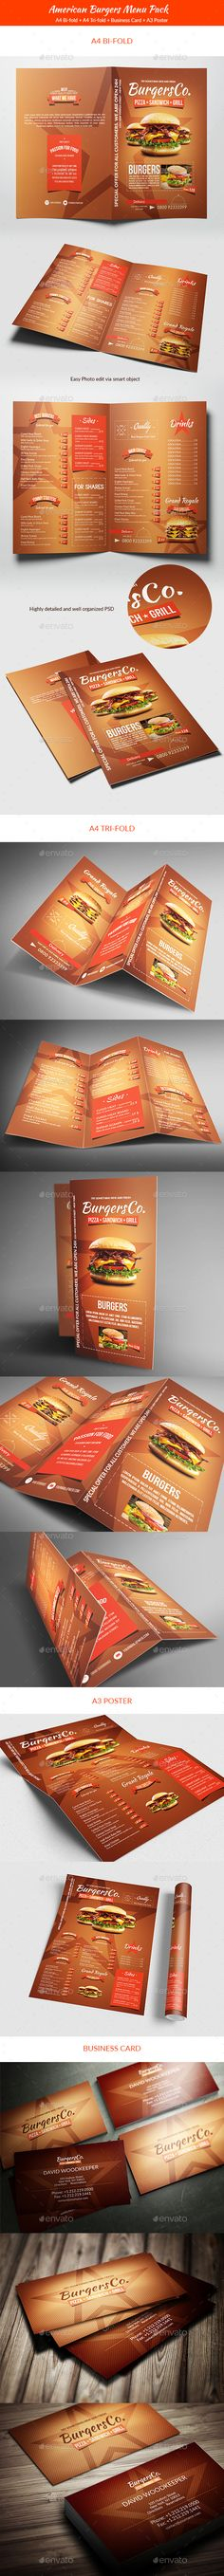 American Burgers Food Menu Pack Templates PSD #design Download: http://graphicriver.net/item/american-burgers-food-menu-pack/14352681?ref=ksioks